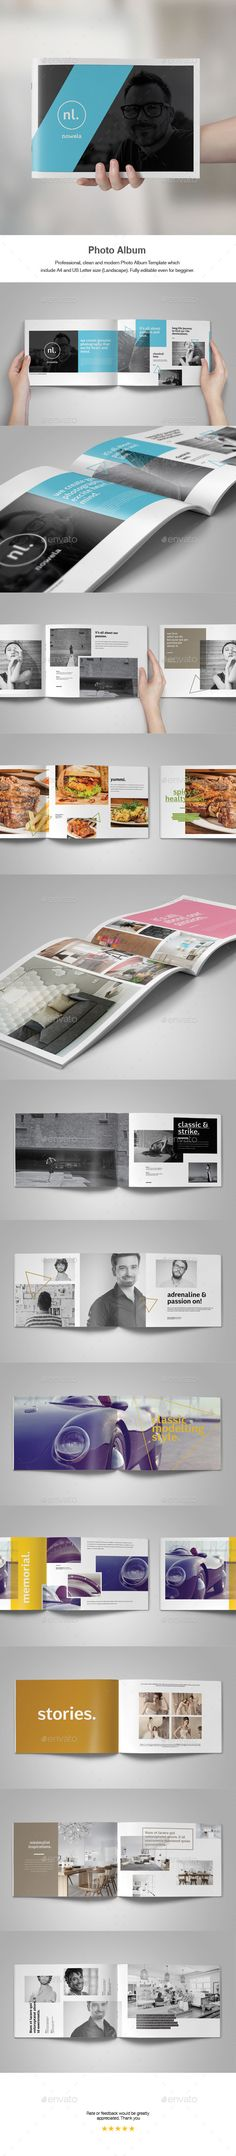 Ur Photo Album Indesign Template | Indesign templates, Template and ...